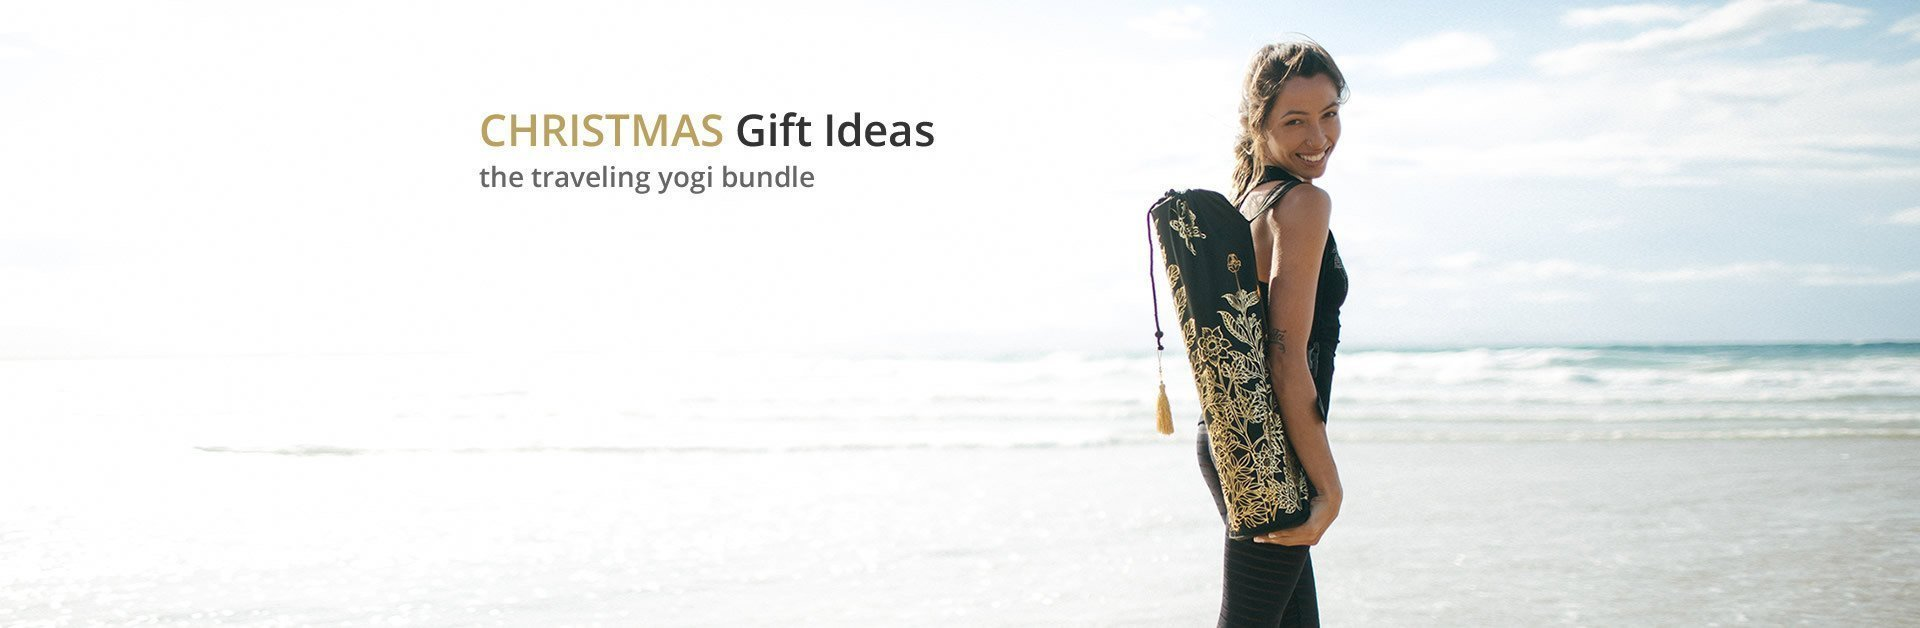 Christmas Gift Ideas, The Travelling Yogi Bundle